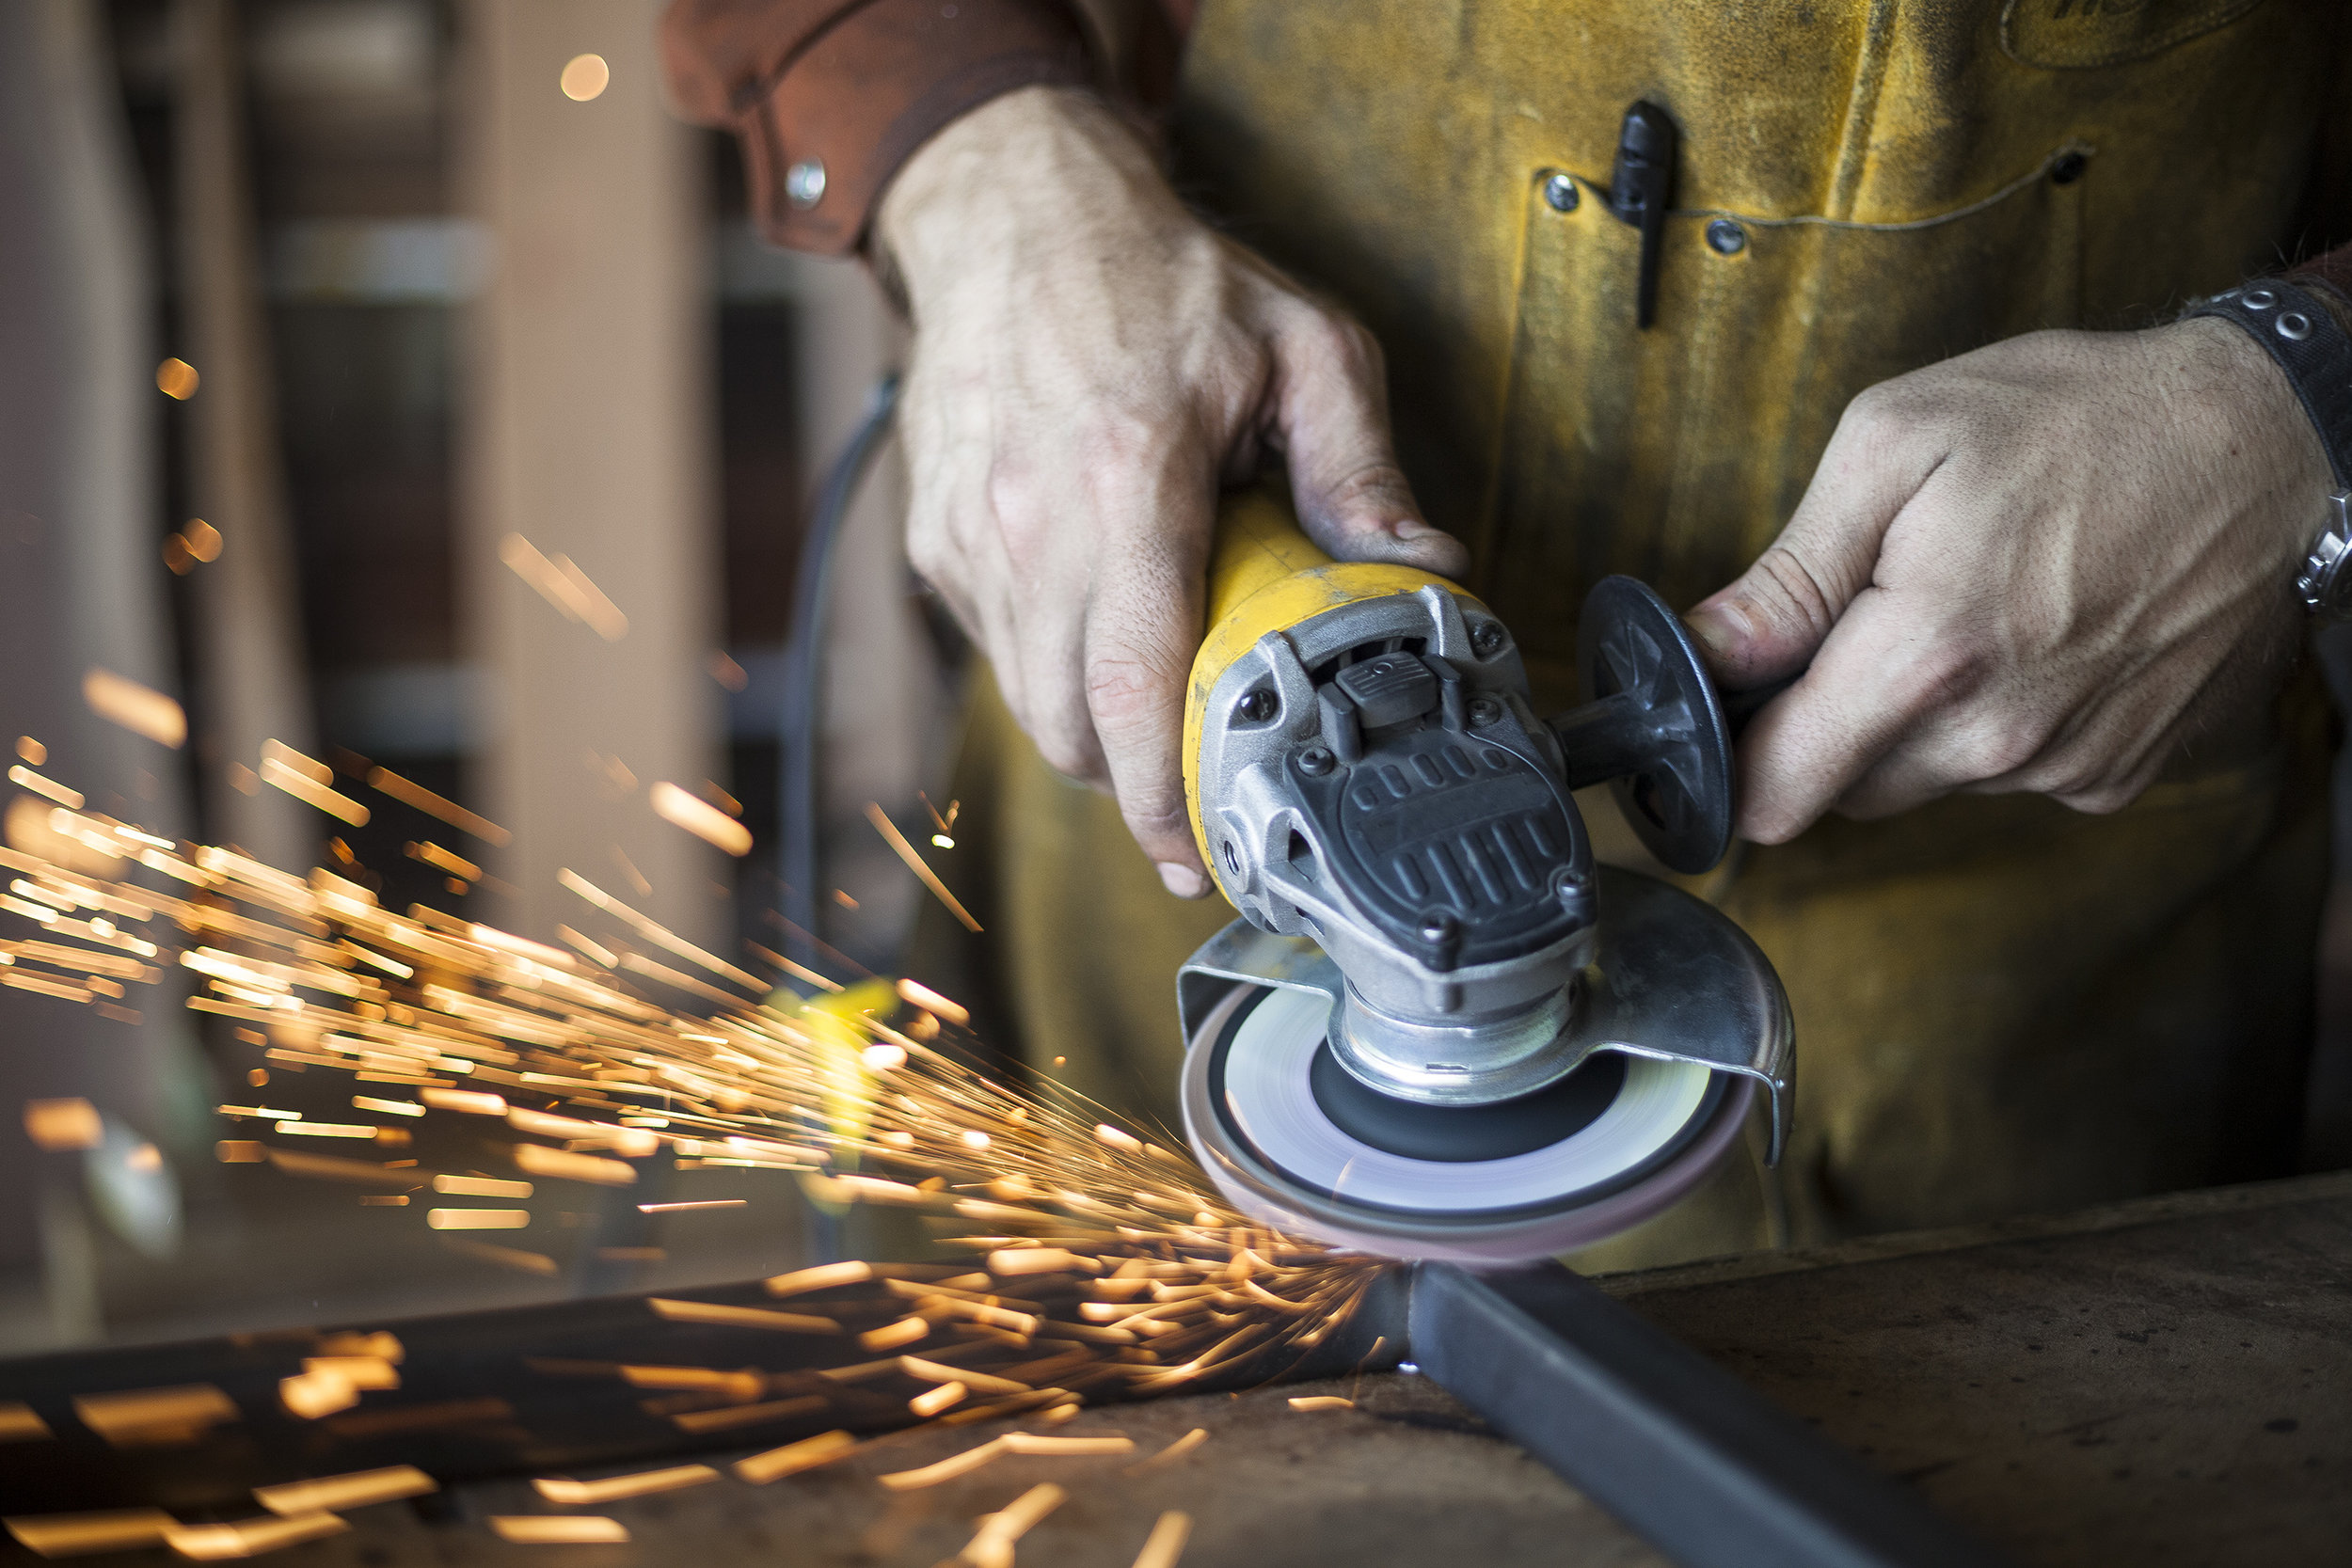 Manufacture - Carpentry | Metalwork | Laser Cutting & Engraving | CNC Machining | Vac Forming | Spray Booth | Chroming | Illuminated & Led Lettering | Line Bending | Acrylic Fabrication